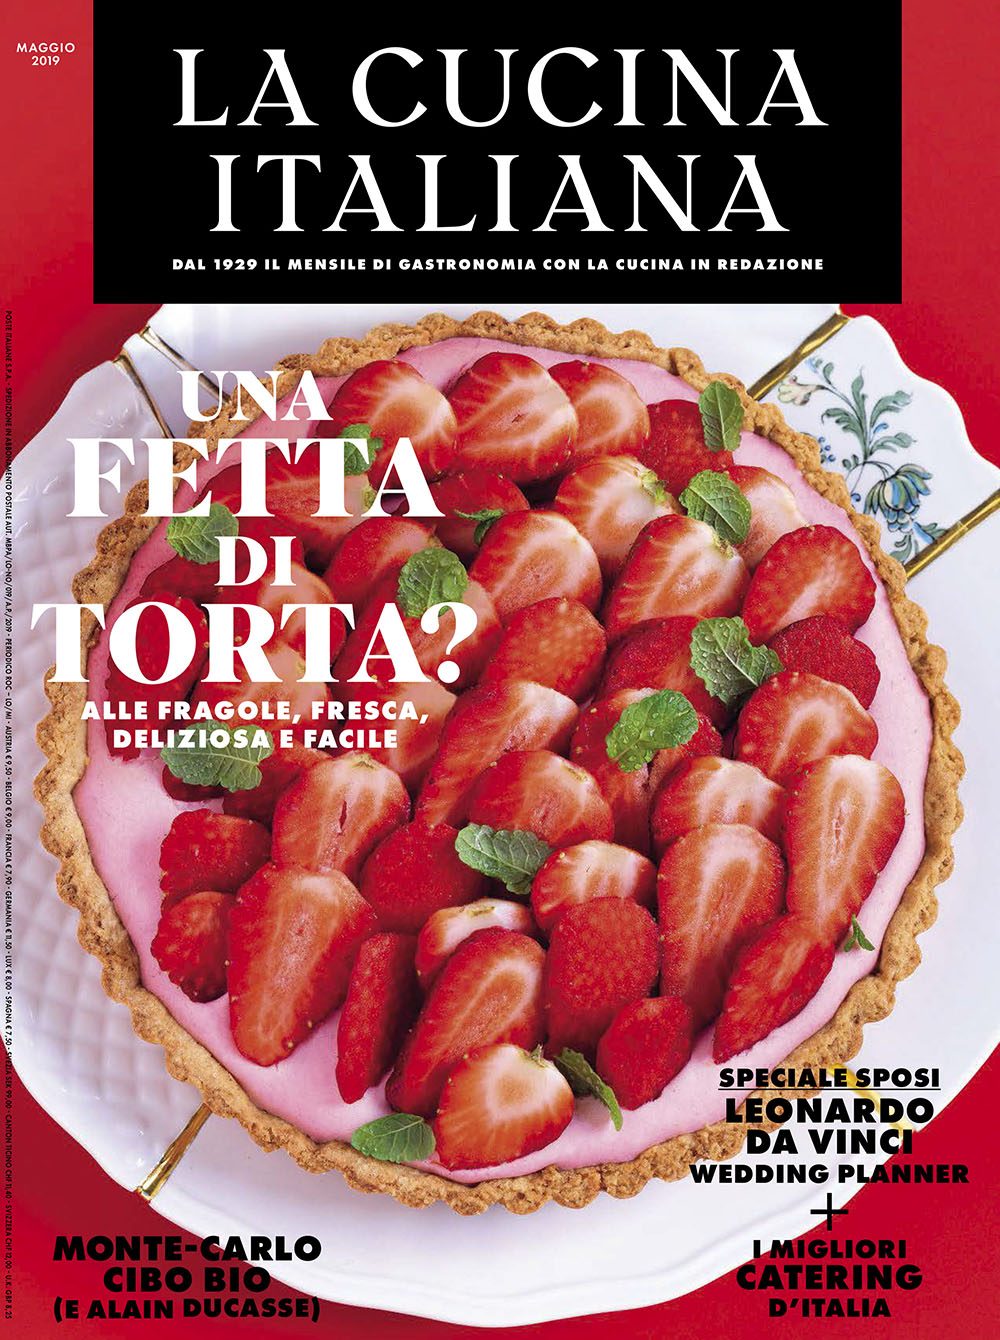 Strawberry tart: the cover recipe and other 10 not to be missed